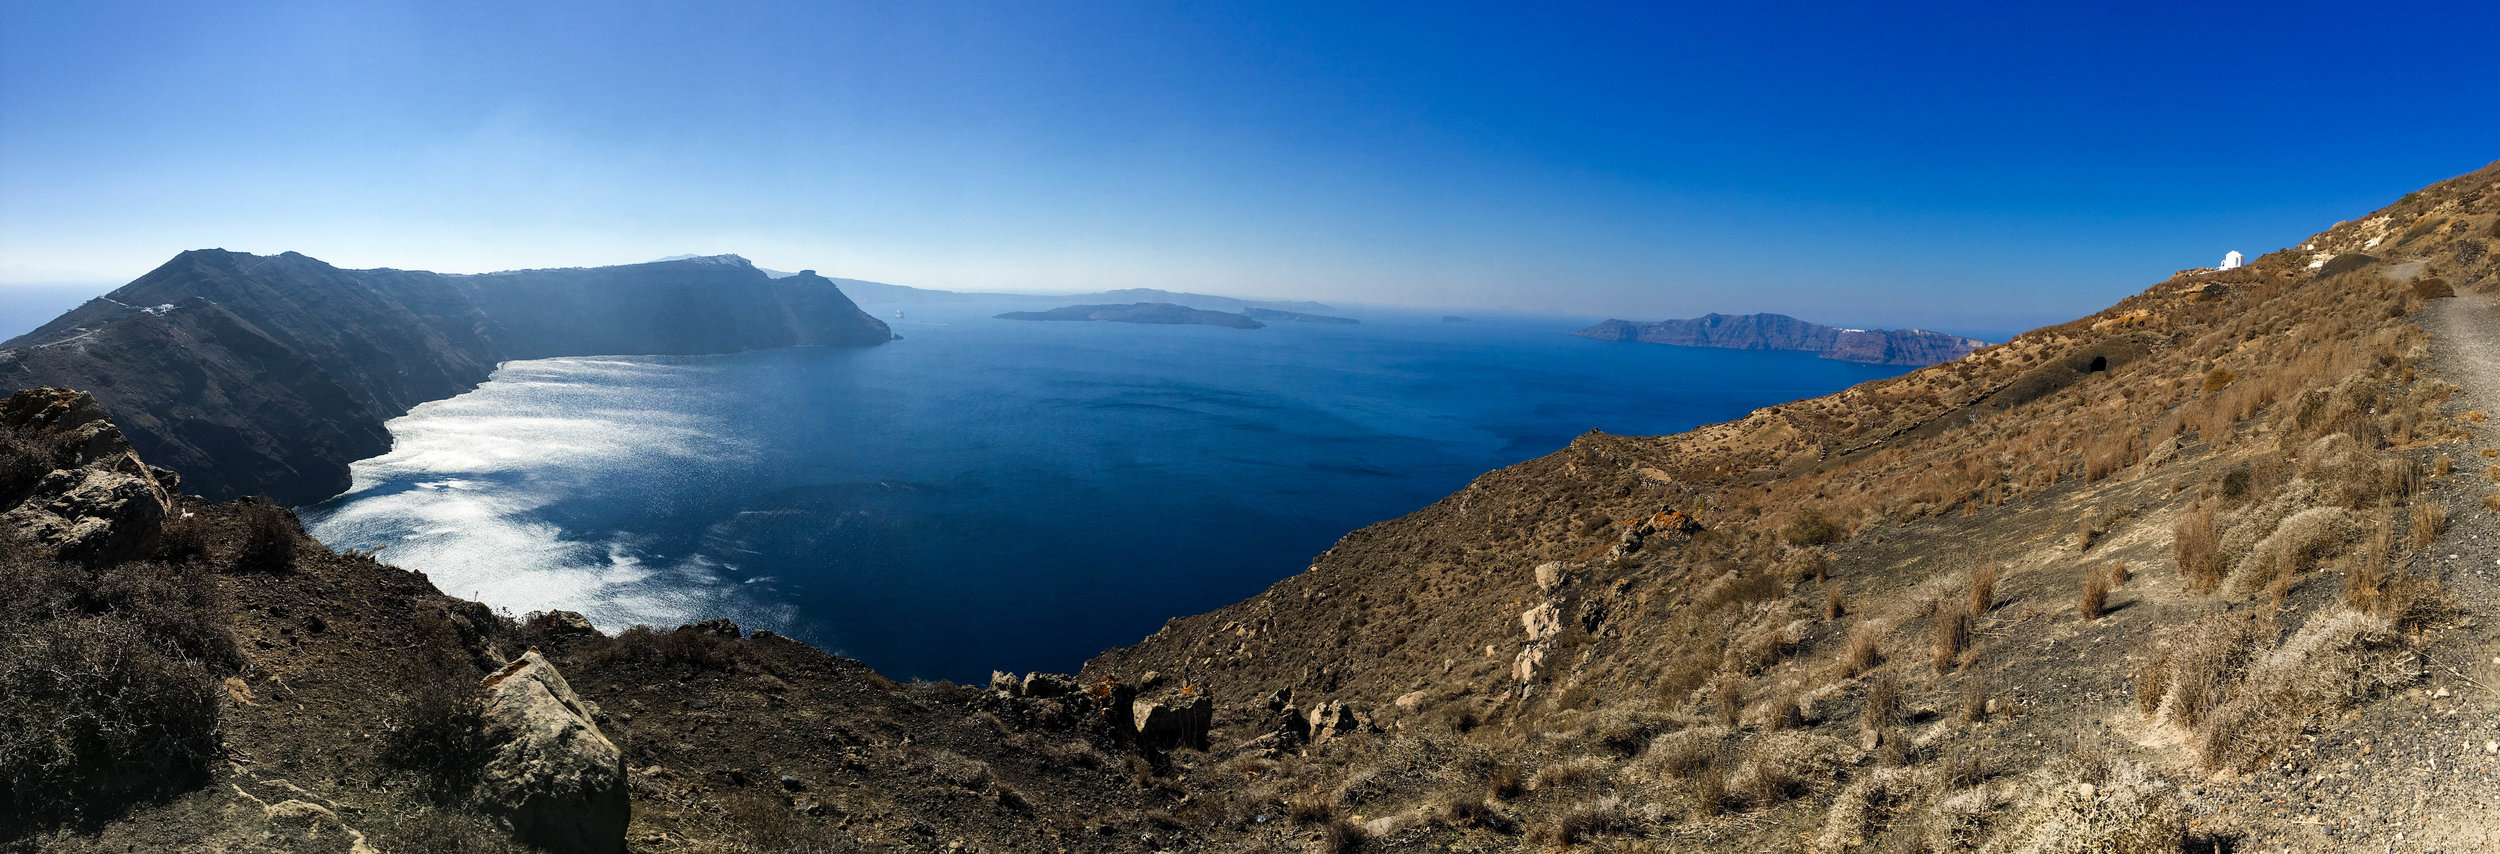 Views on the hike from Fira to Oia, Santorini, Greece